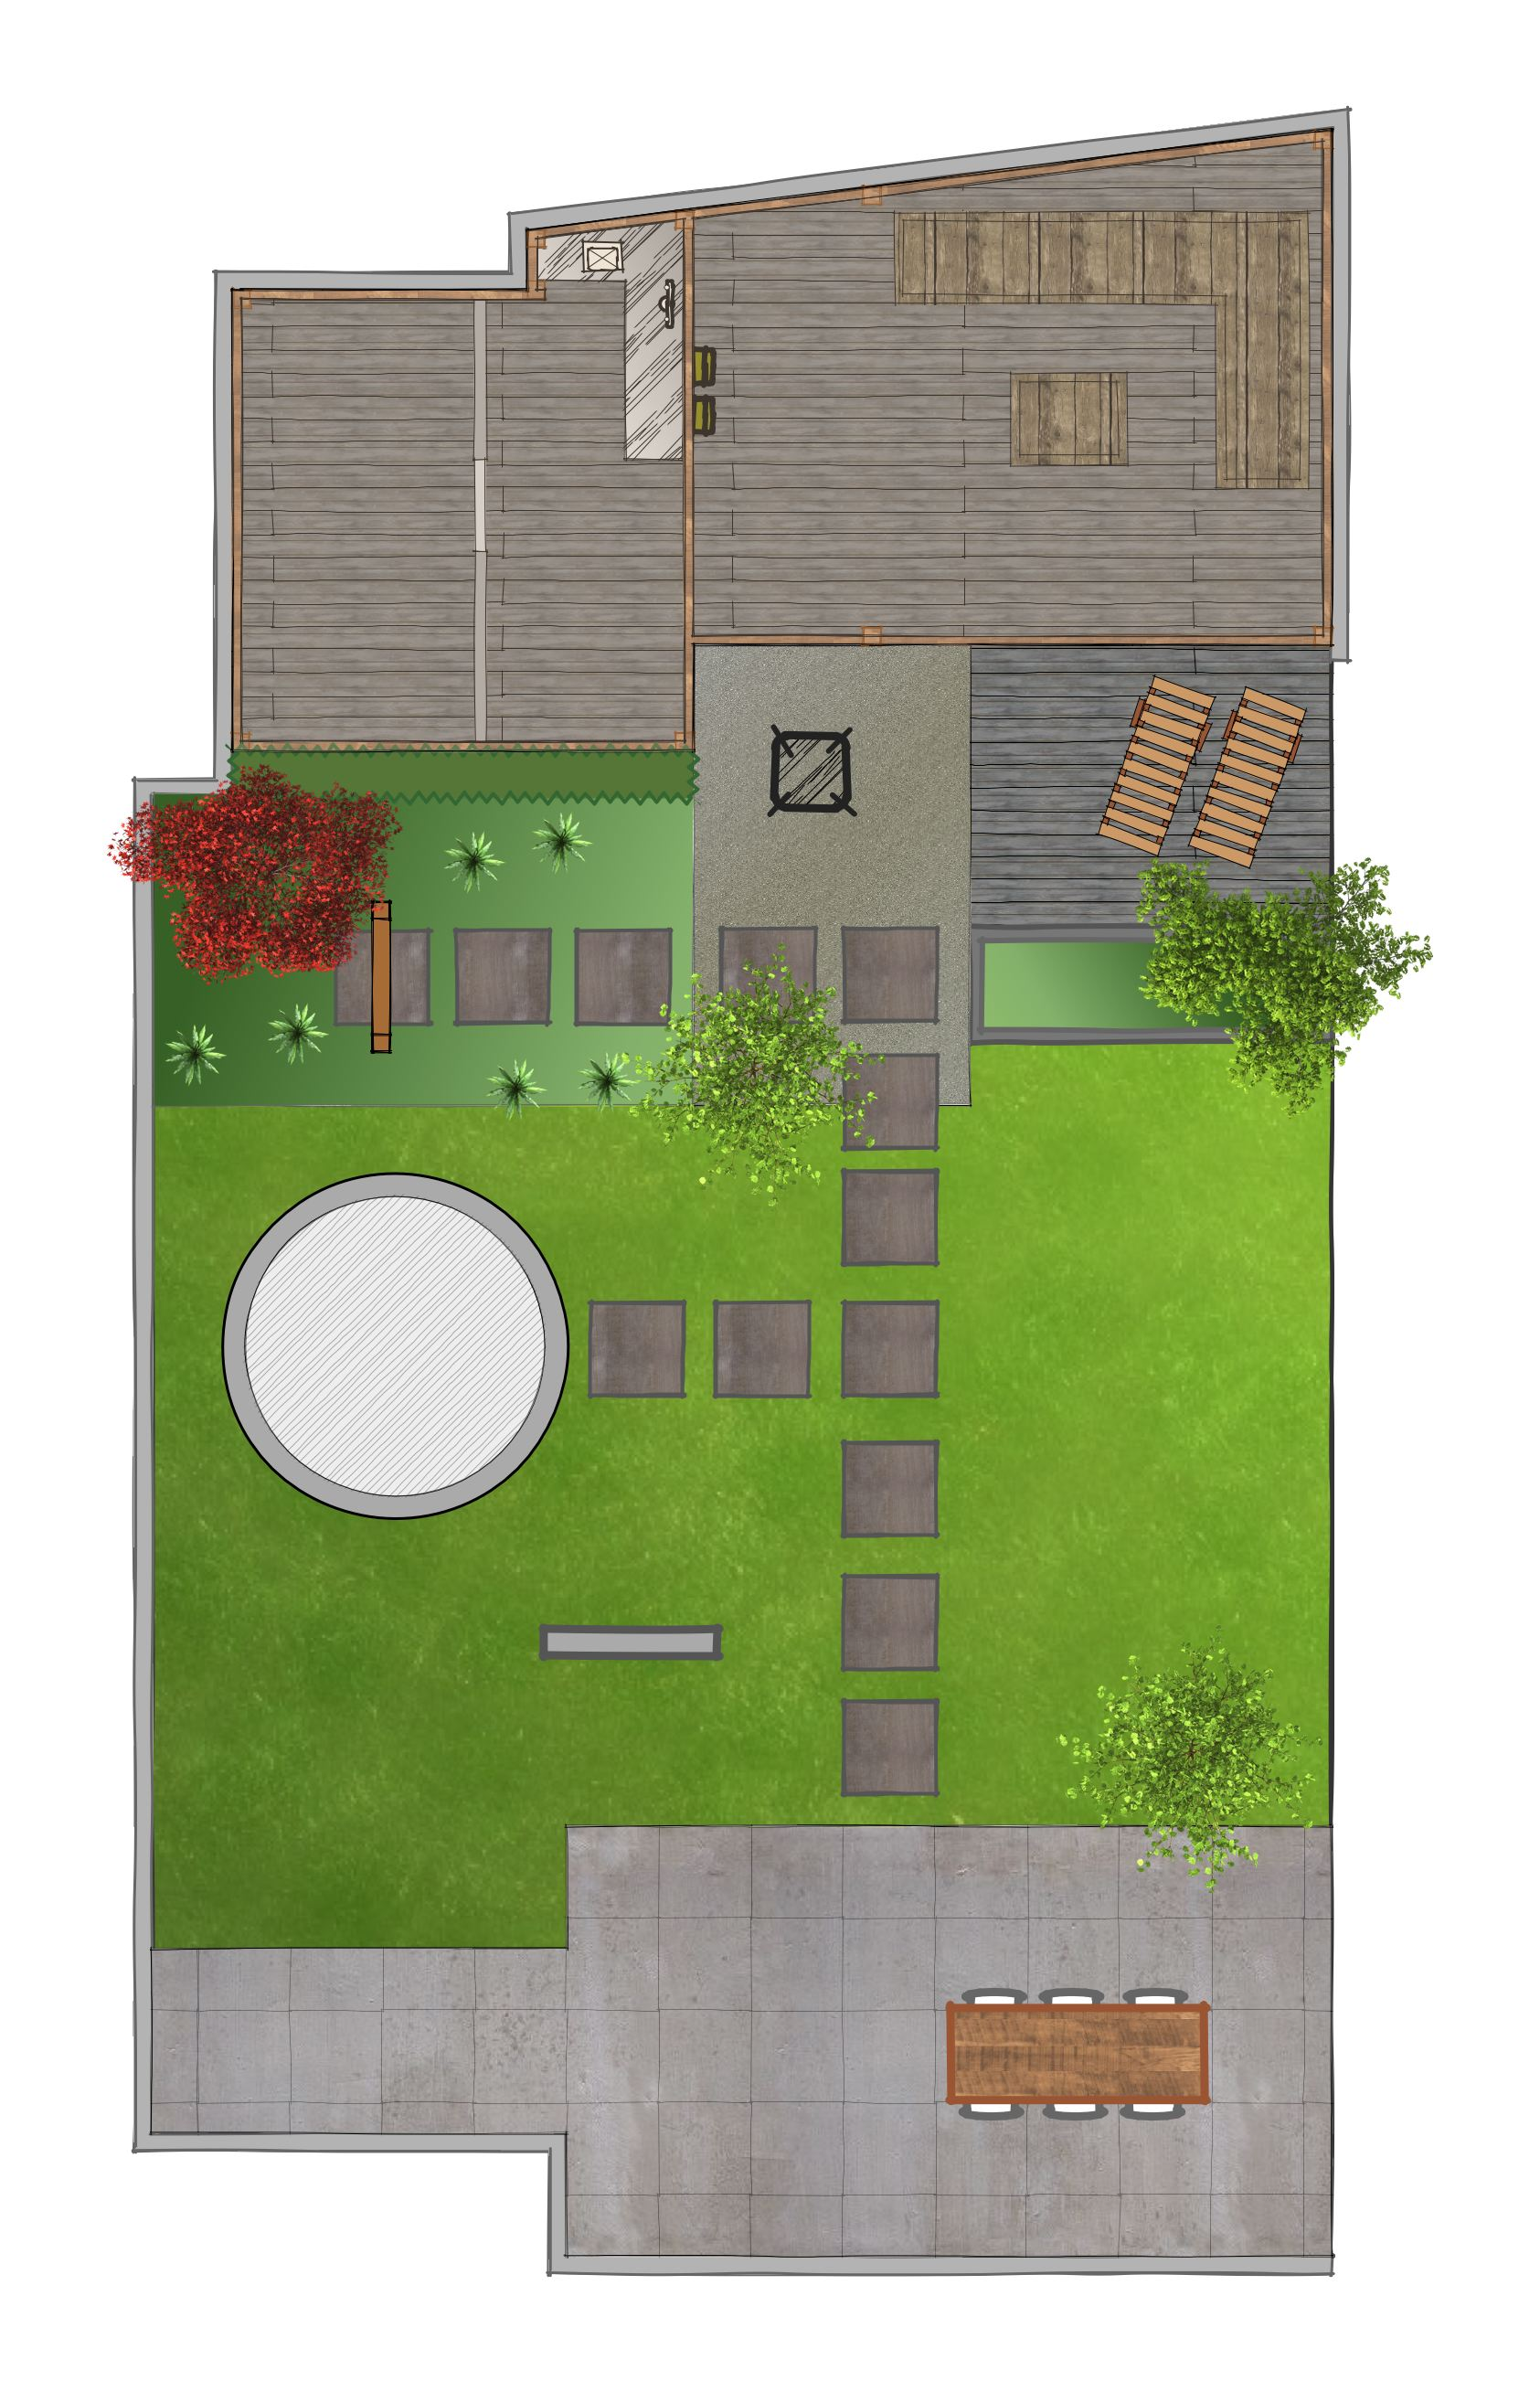 Tuinontwerp software affordable best plne images on for Tuinontwerp app